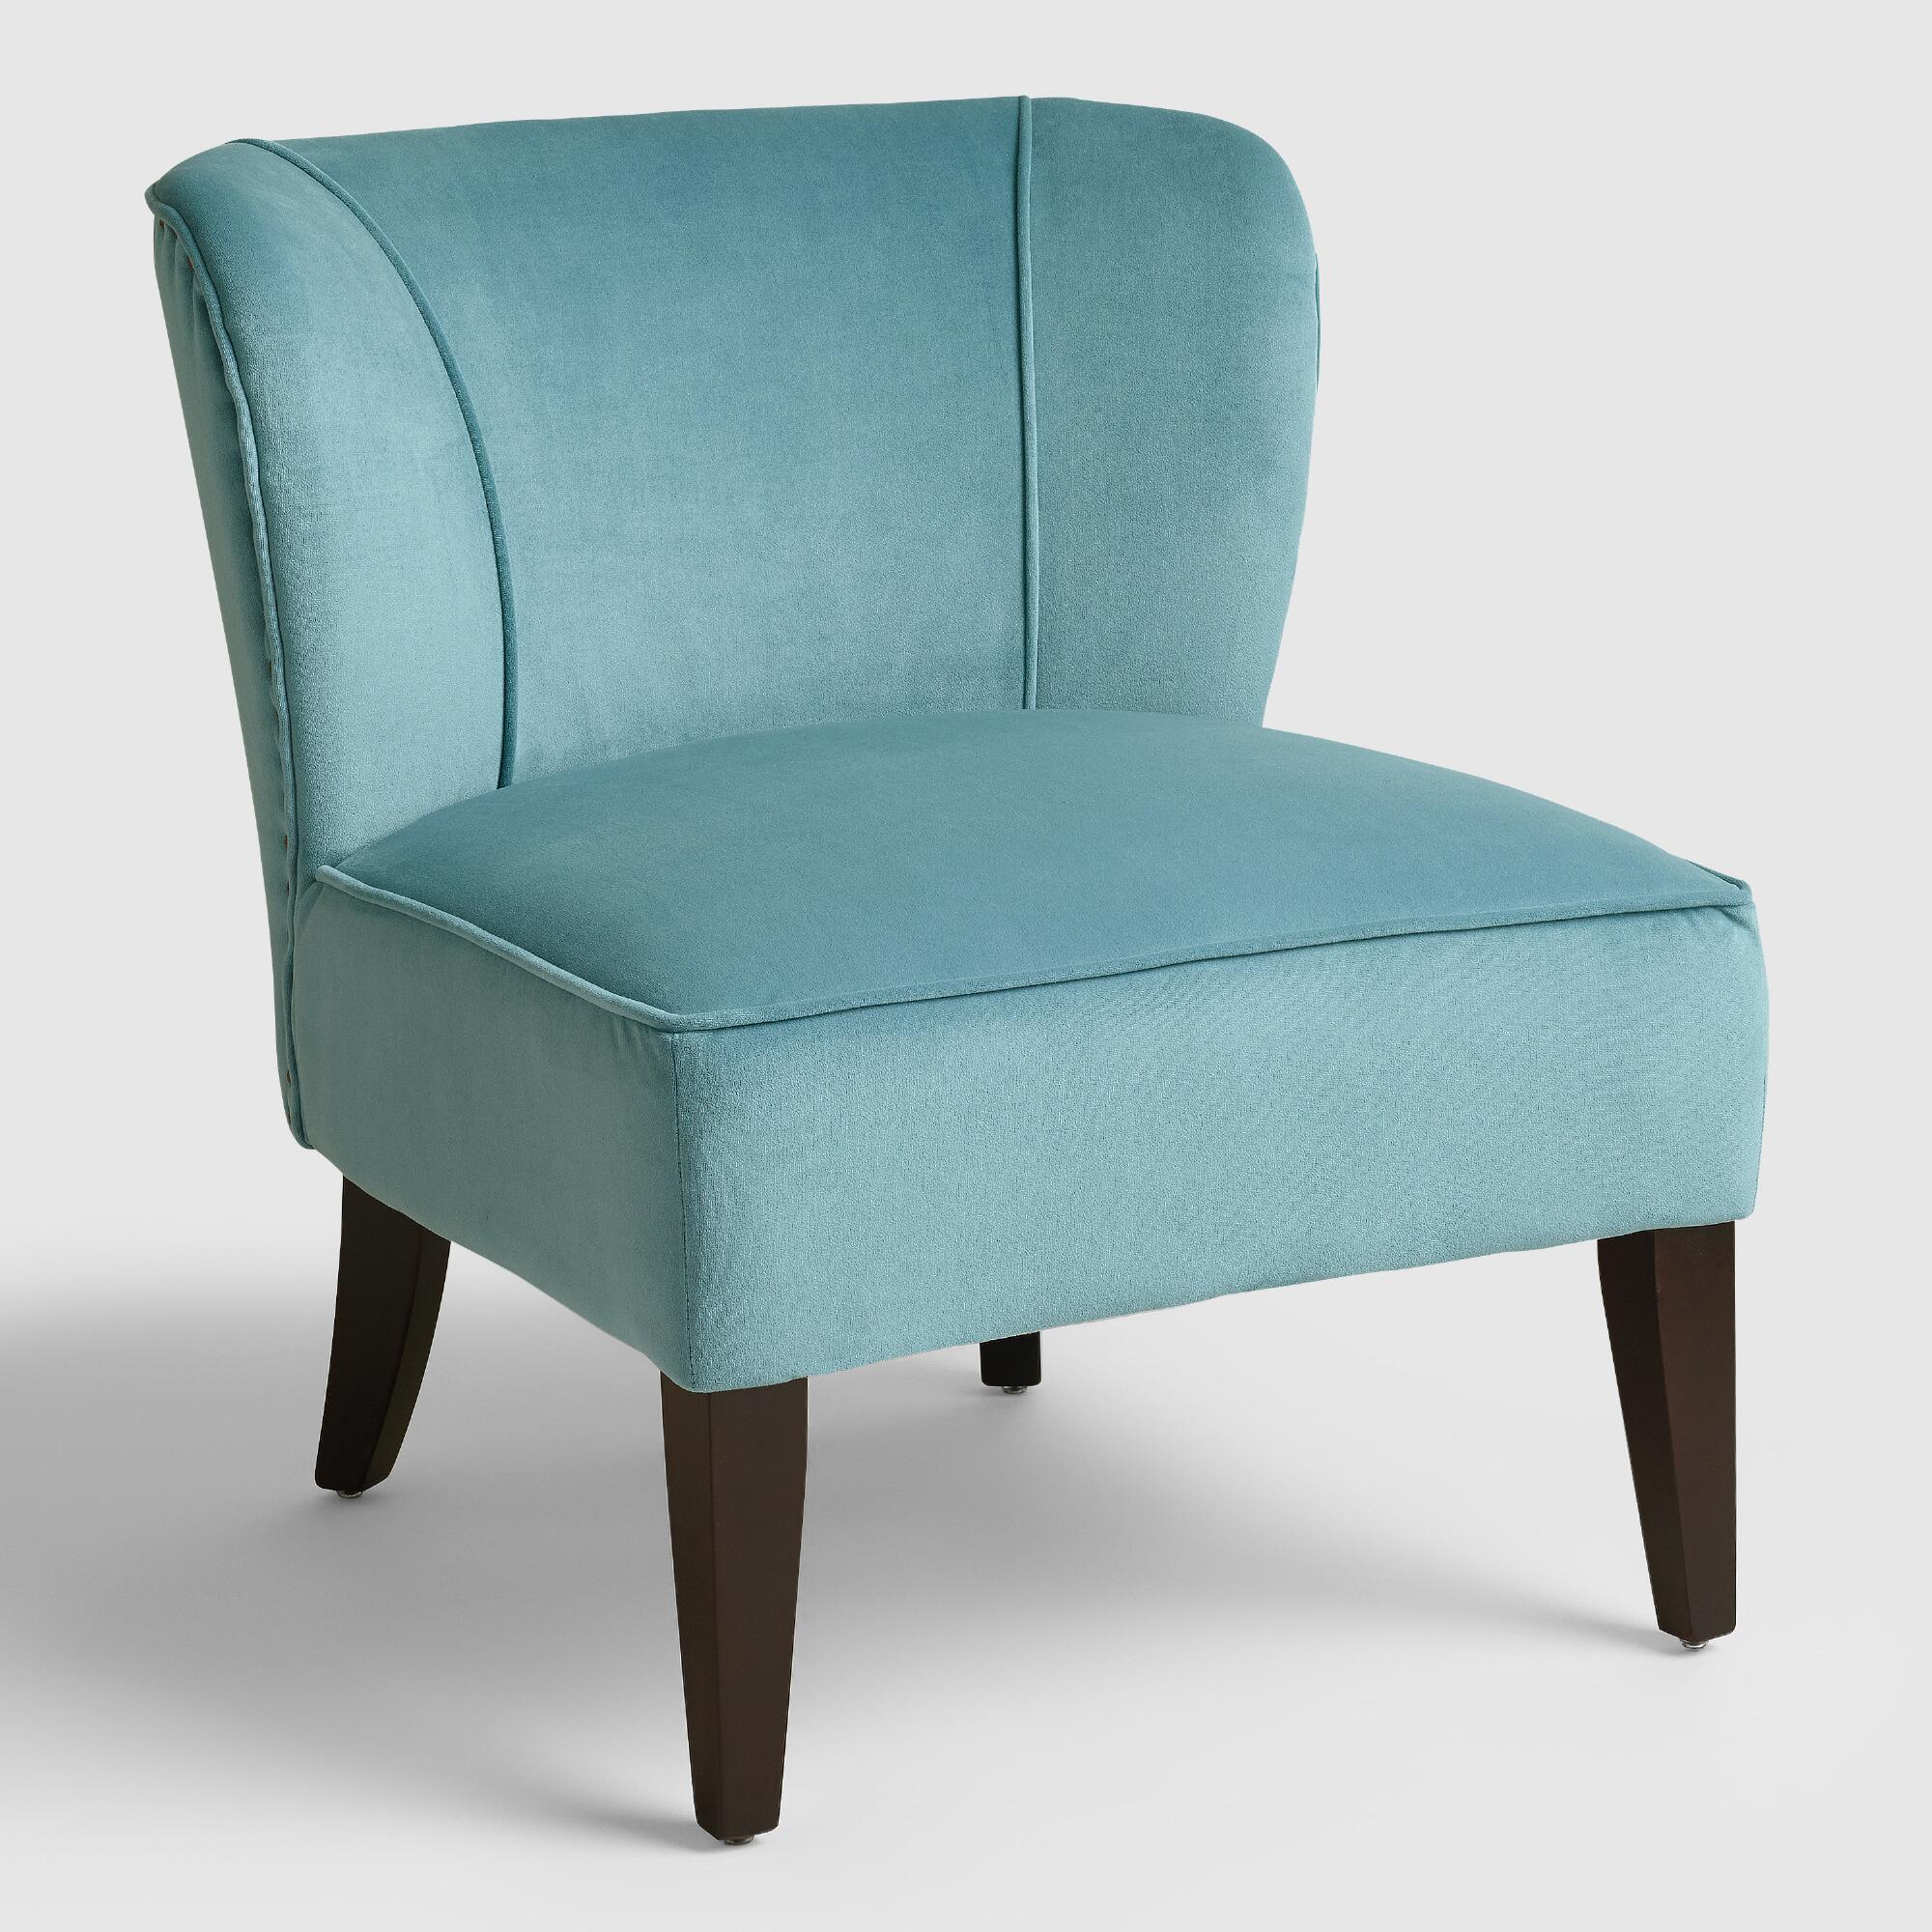 Caribbean Blue Quincy Chair | World Market